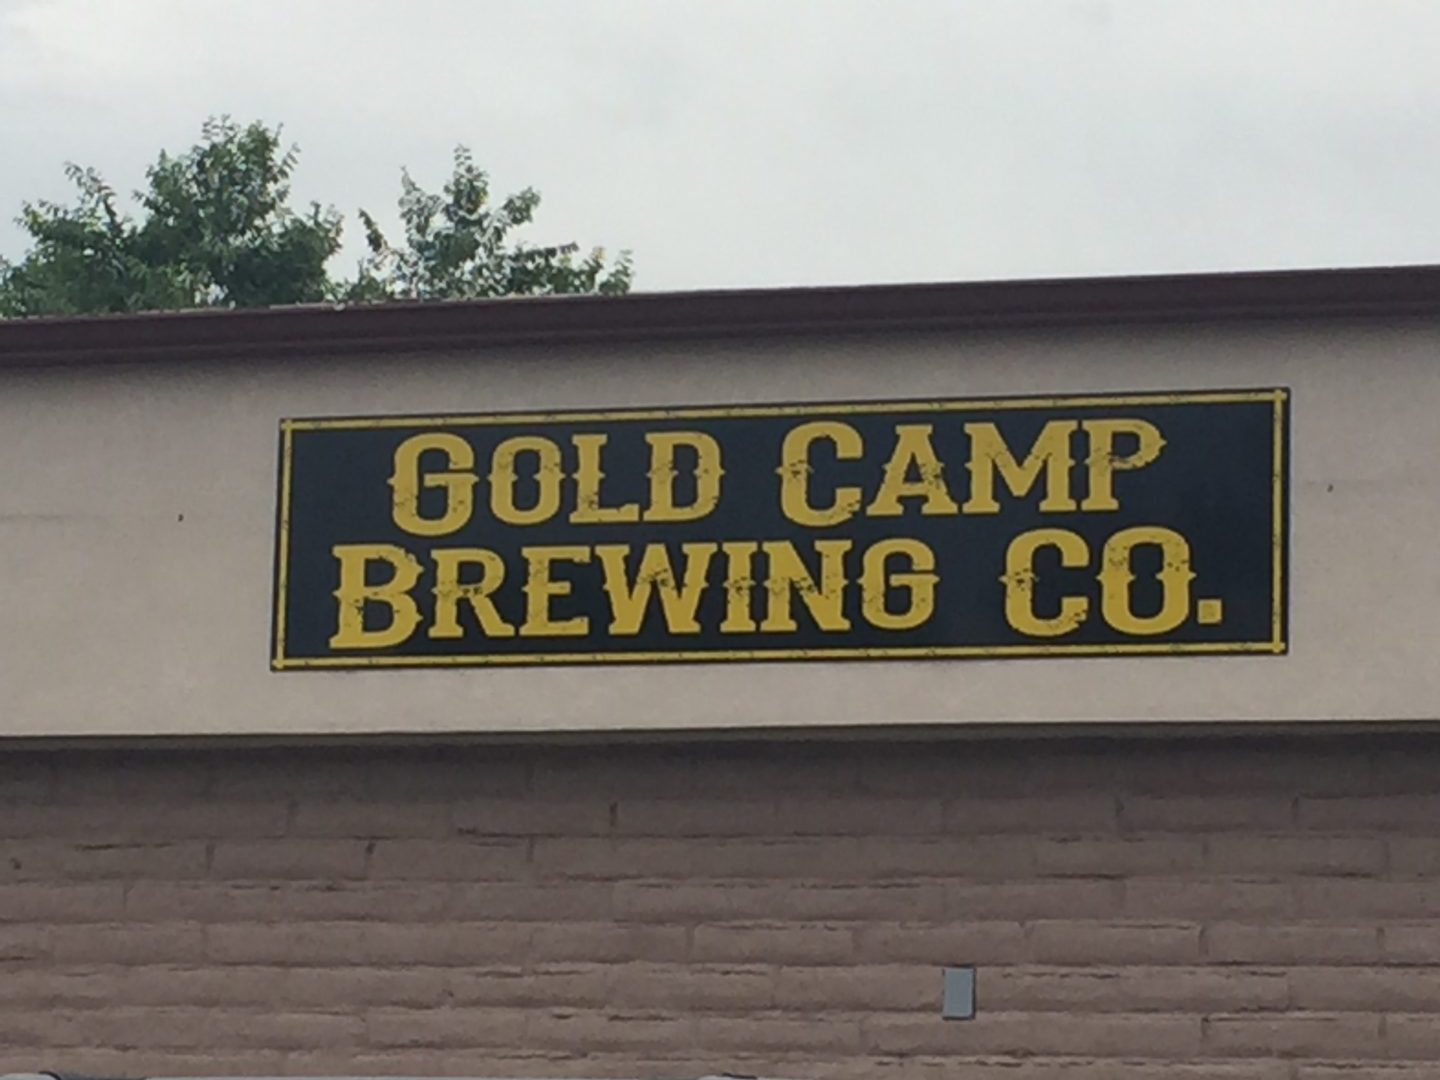 Gold Camp Brewing Co. - Colorado Springs Real Estate Guy